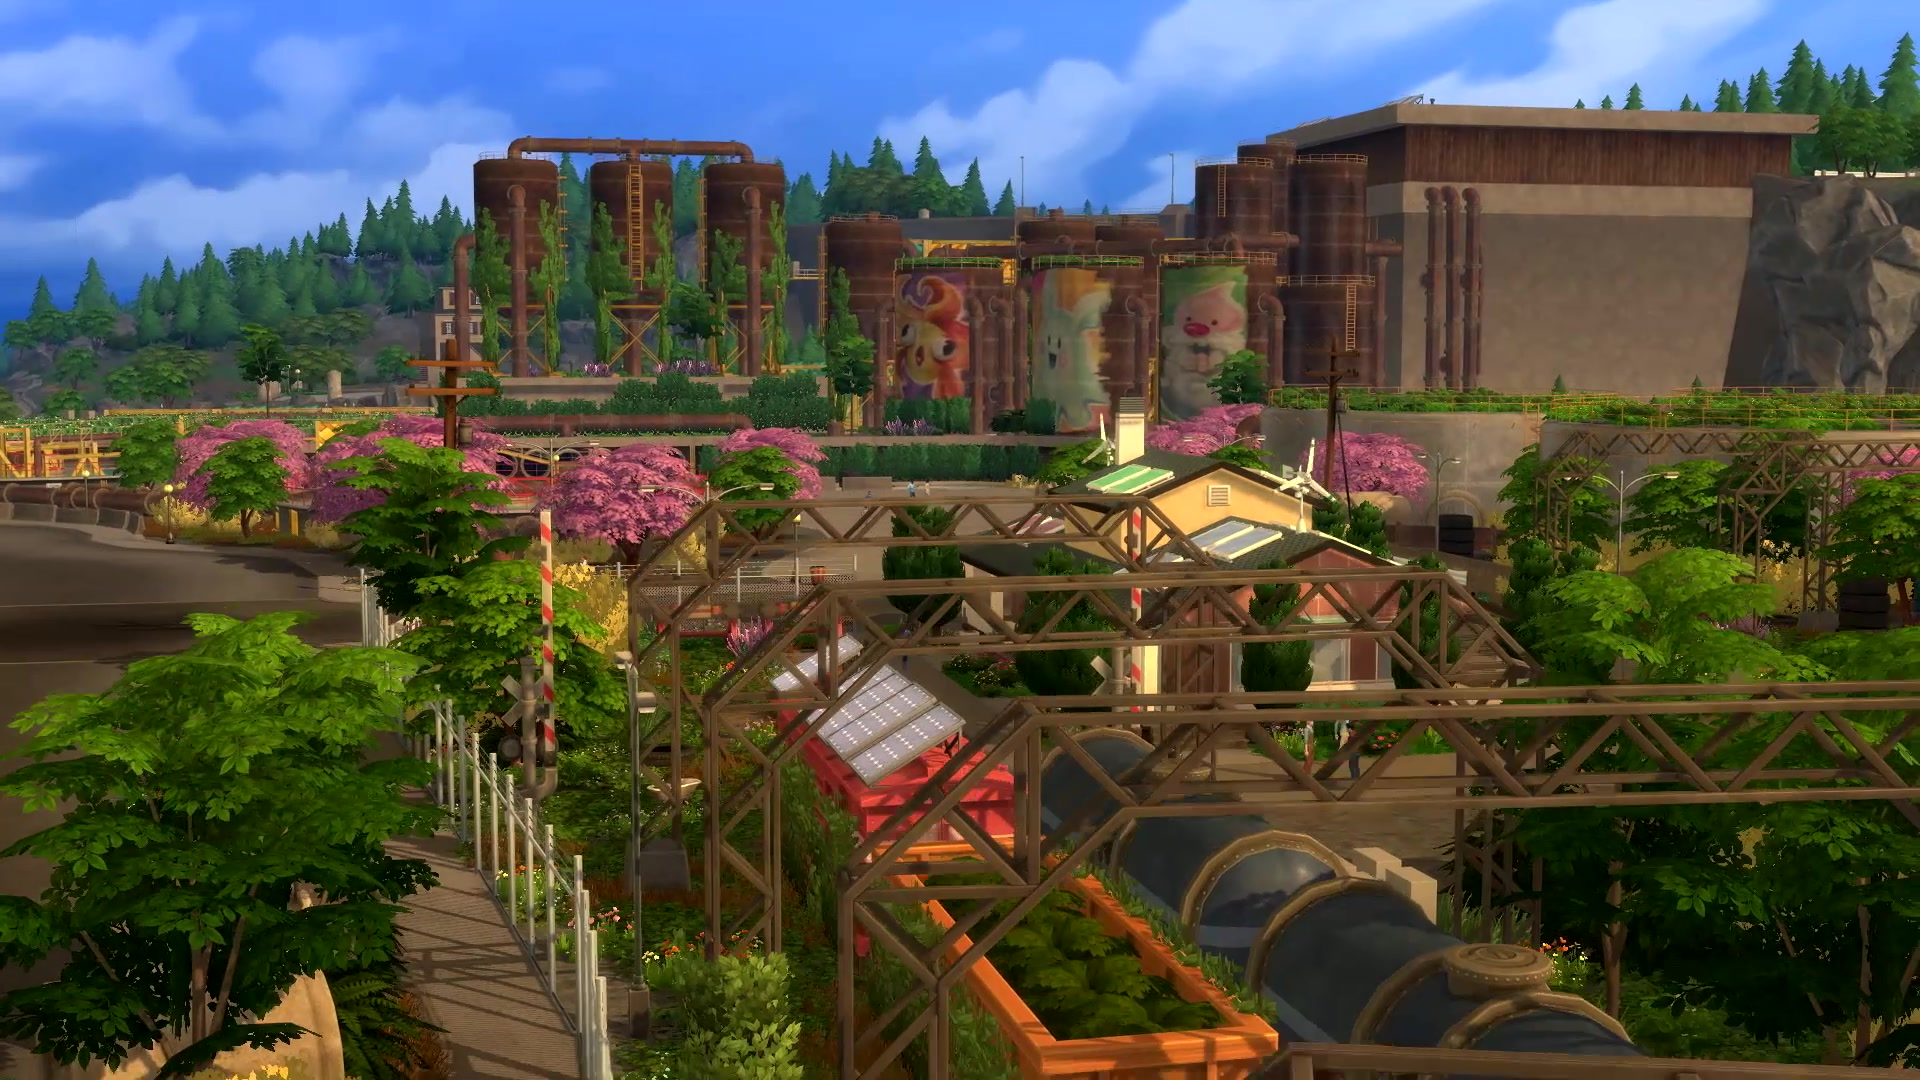 The Sims 4 Worlds List Of Lots The Sims Fan Page